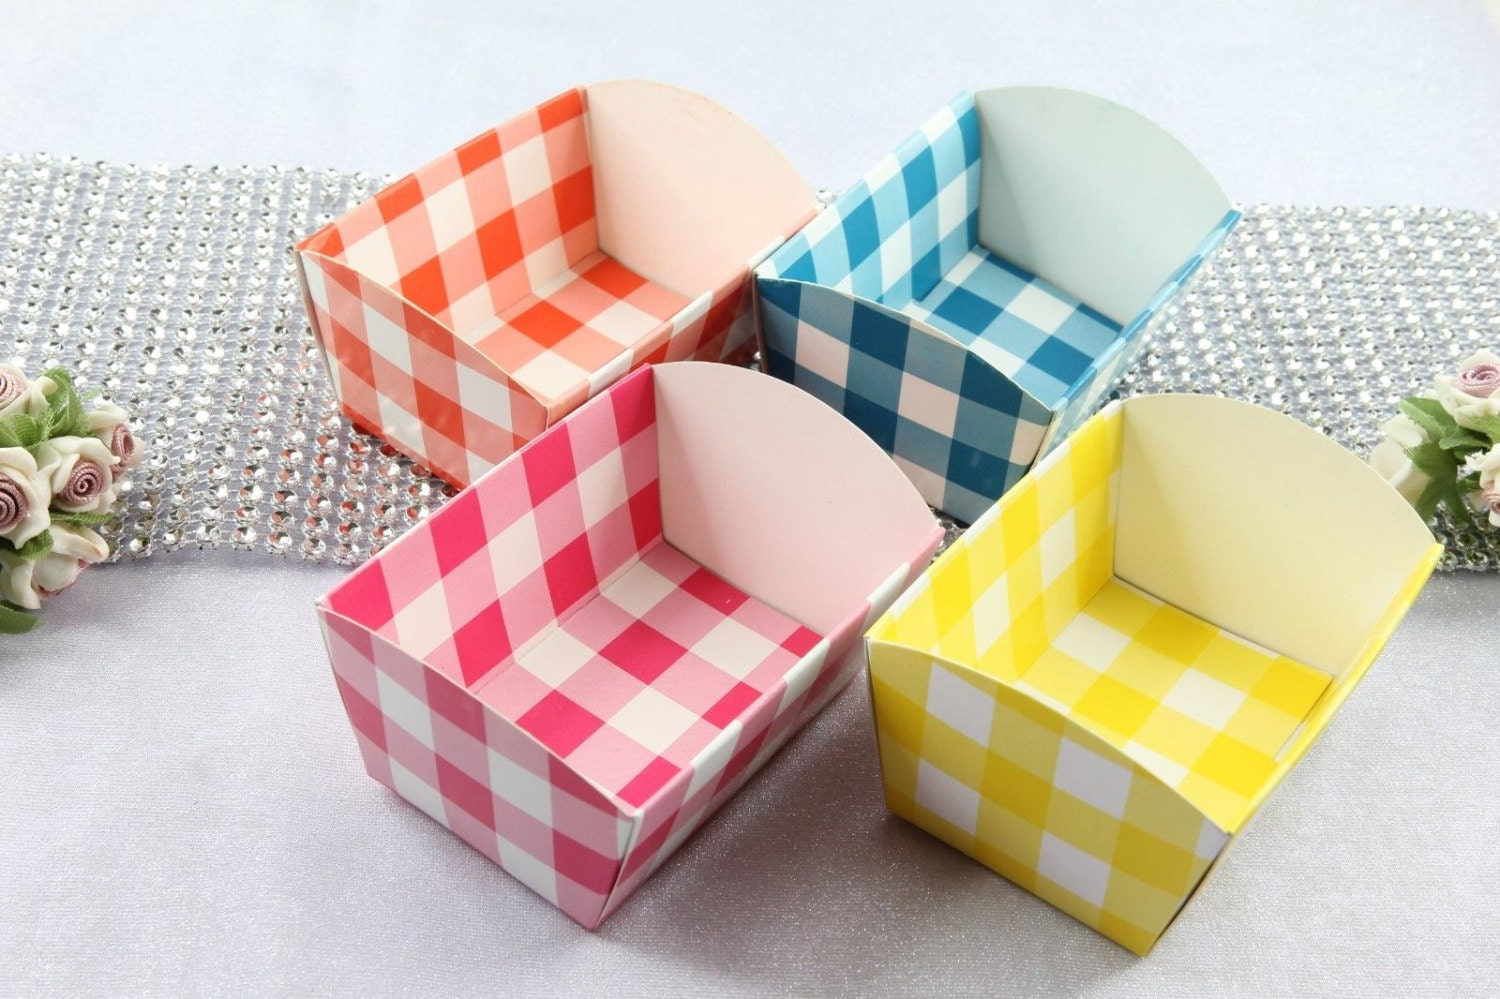 paper nut cups 10 items baking cups, nut cups, petite fours by royal lace great for home, catering & food service.